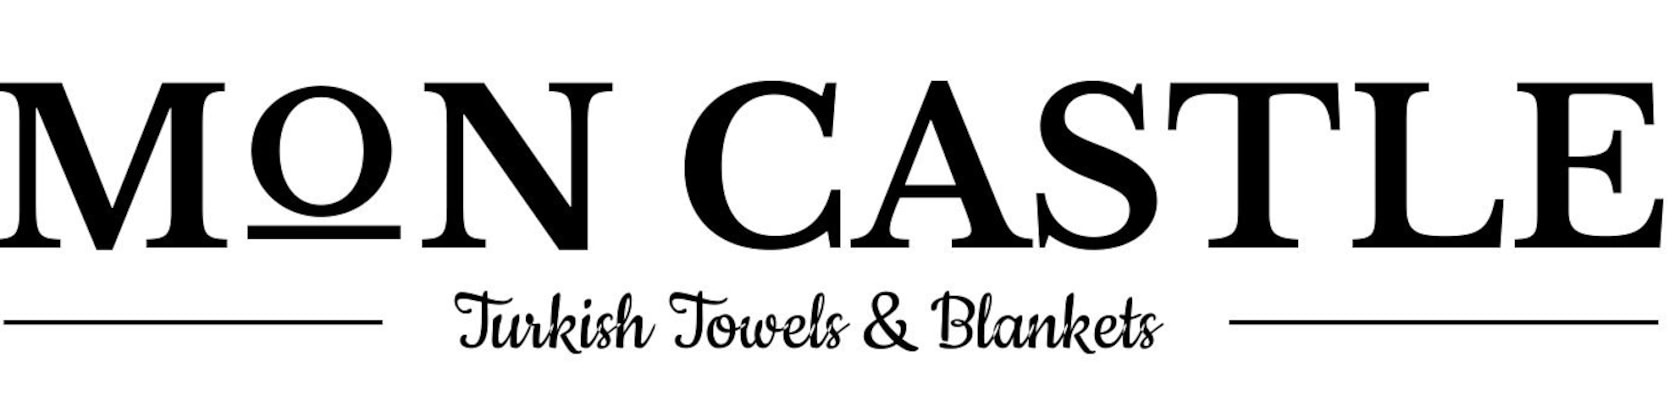 09467f4f3d Premium Turkish Towels   Blankets by MonCastle on Etsy